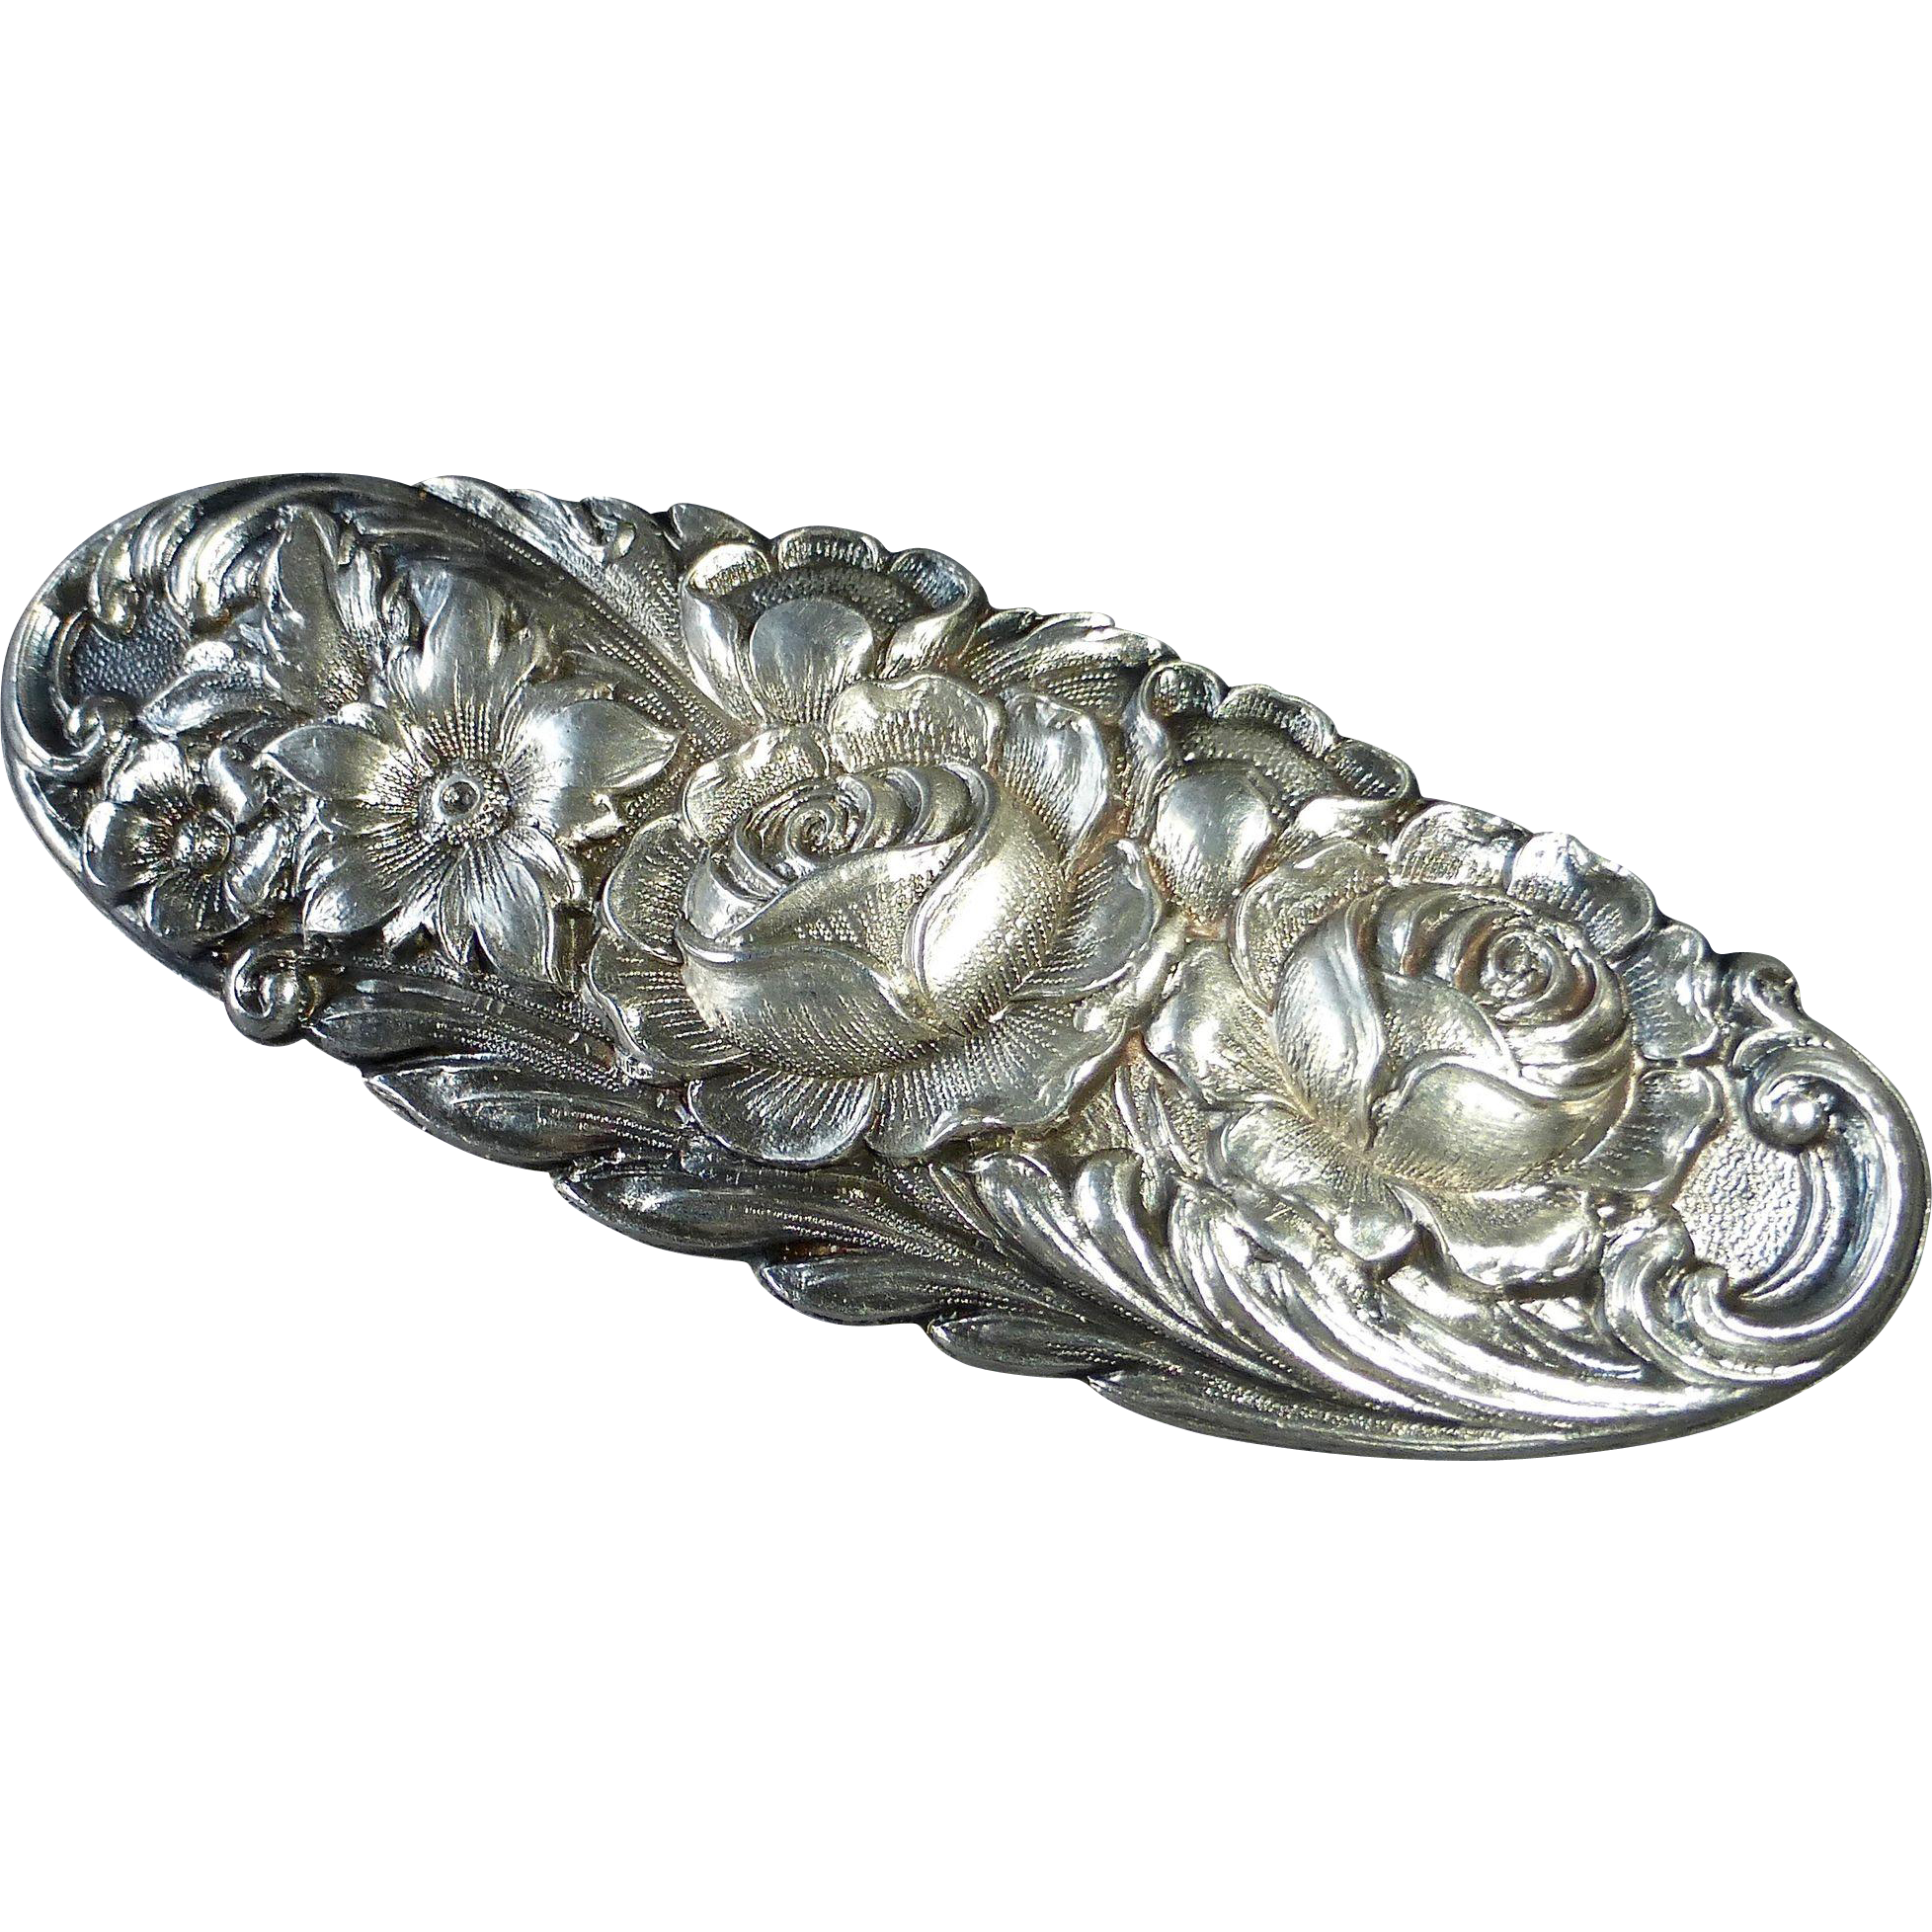 S Kirk & Son Ornate Sterling Floral Pin